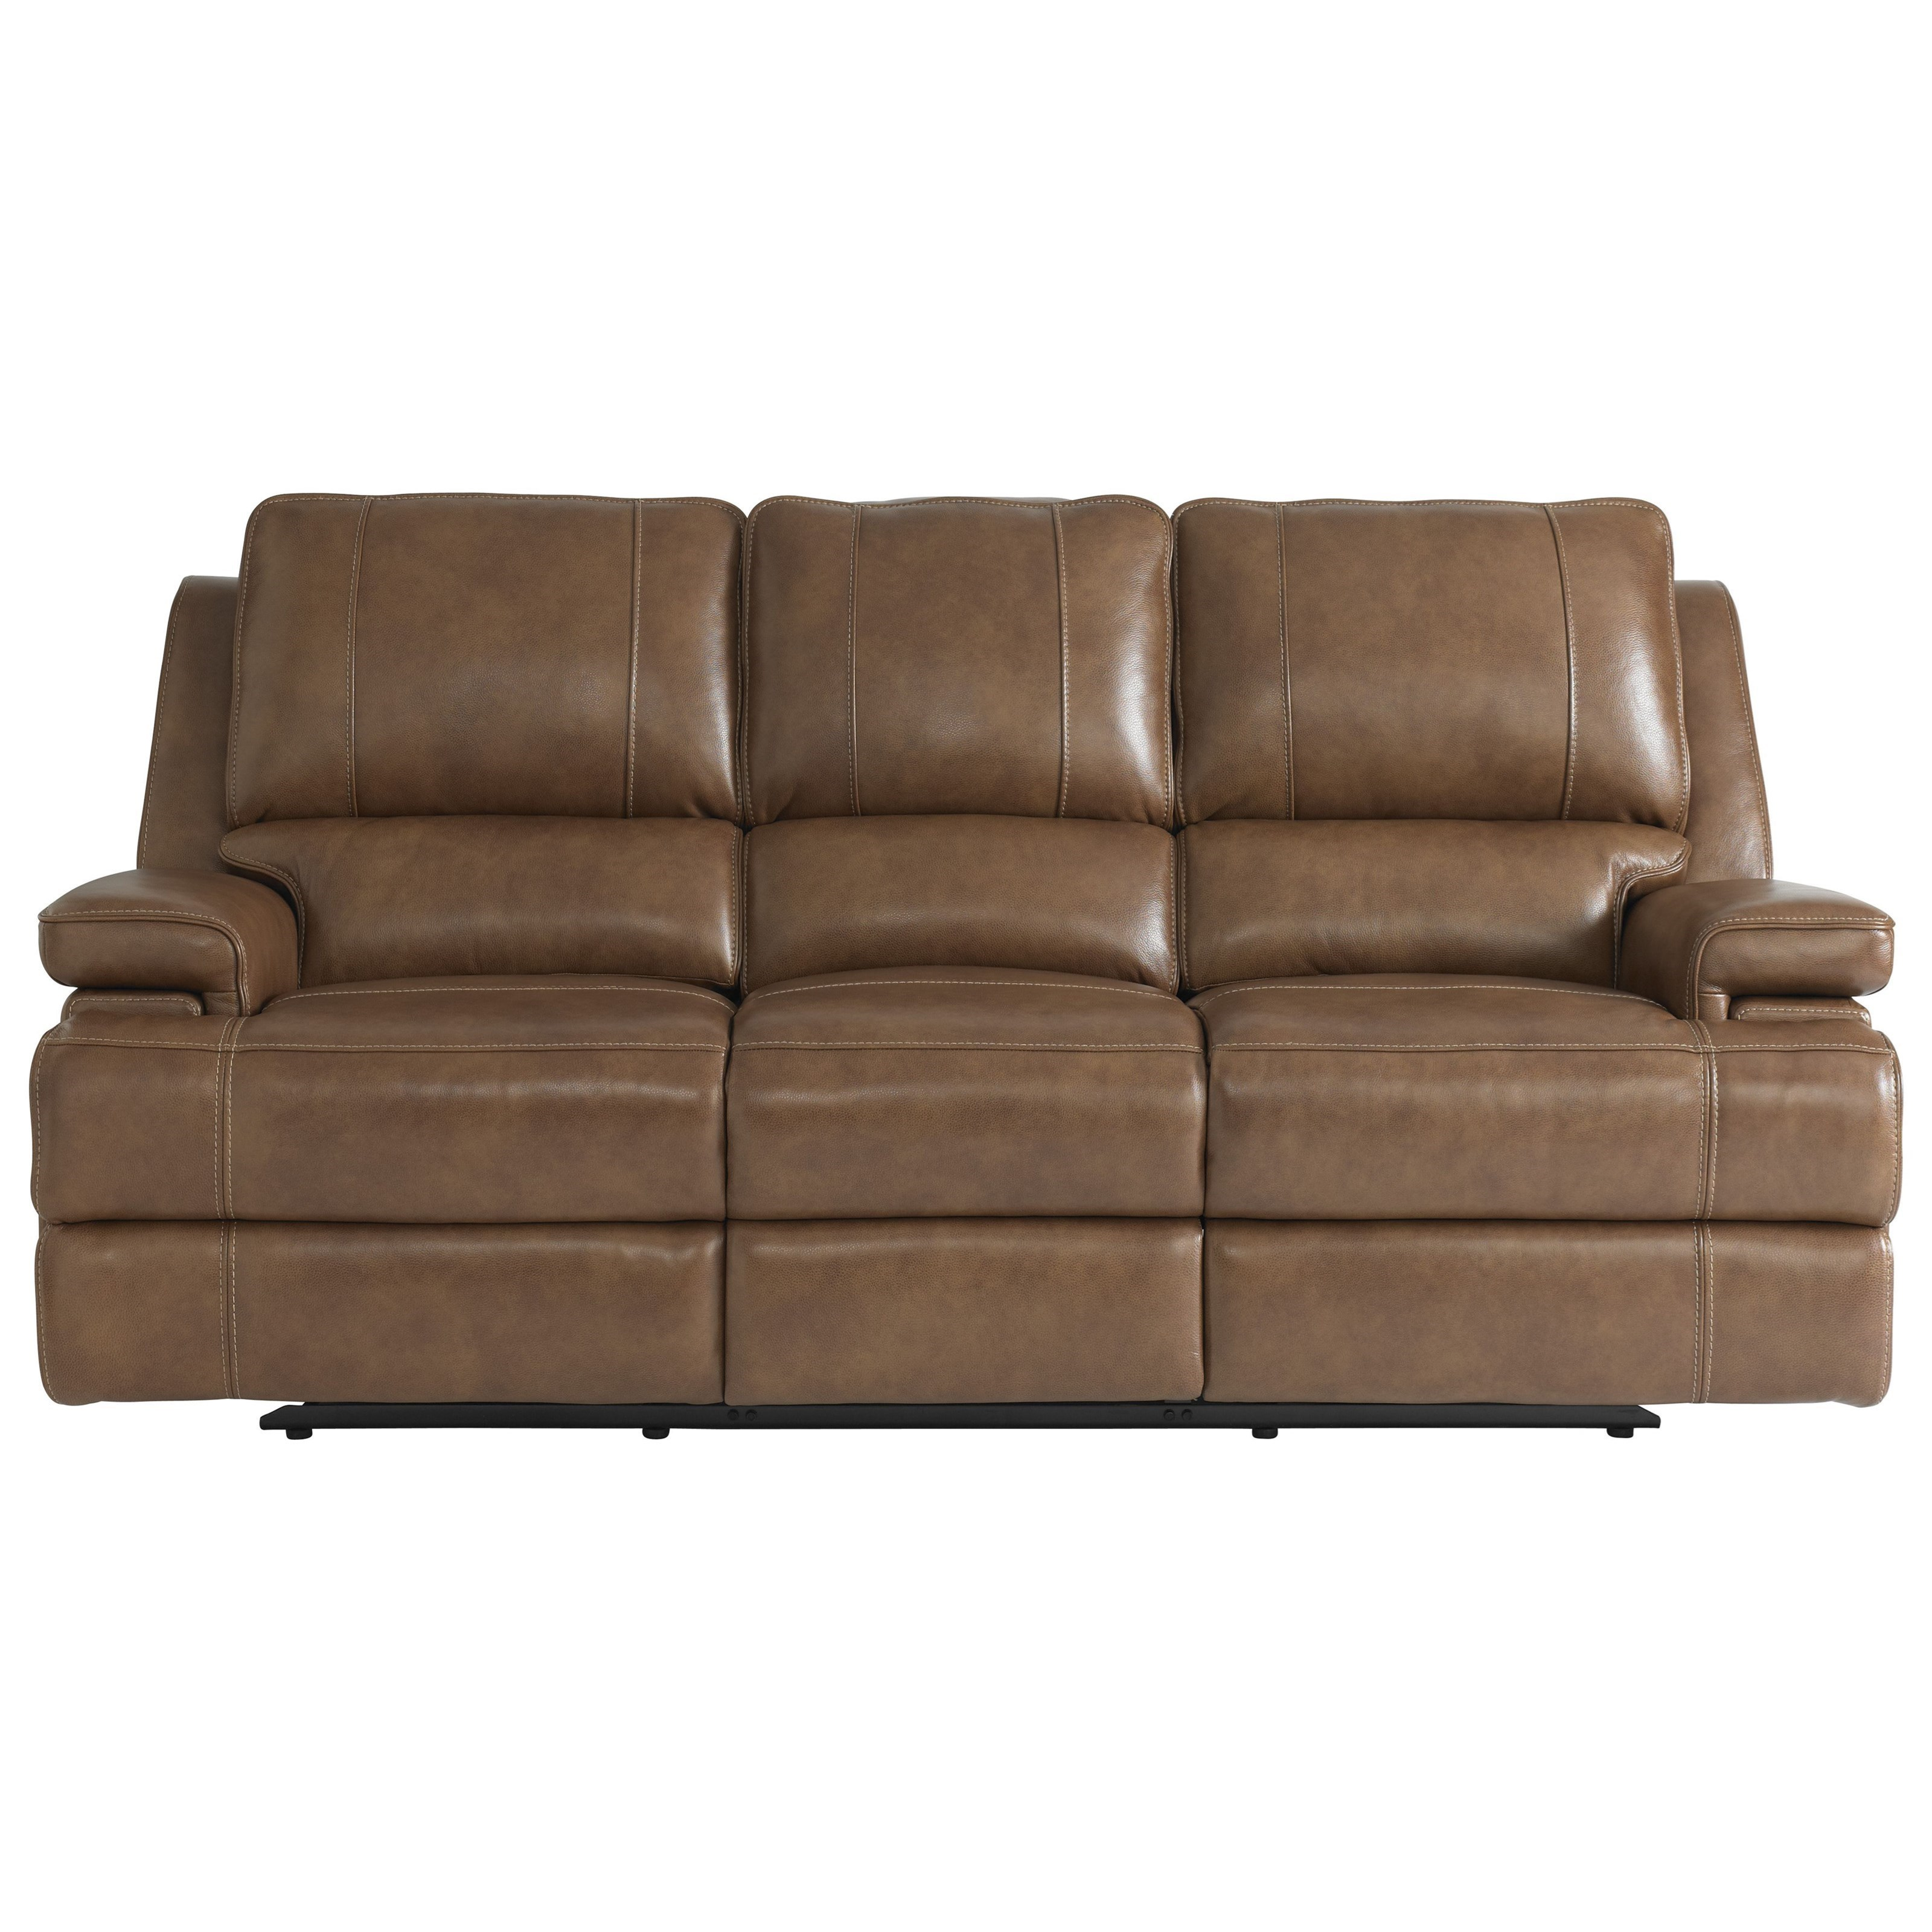 Parsons Club Level  Reclining Sofa with Power Headrests by Bassett at Johnny Janosik